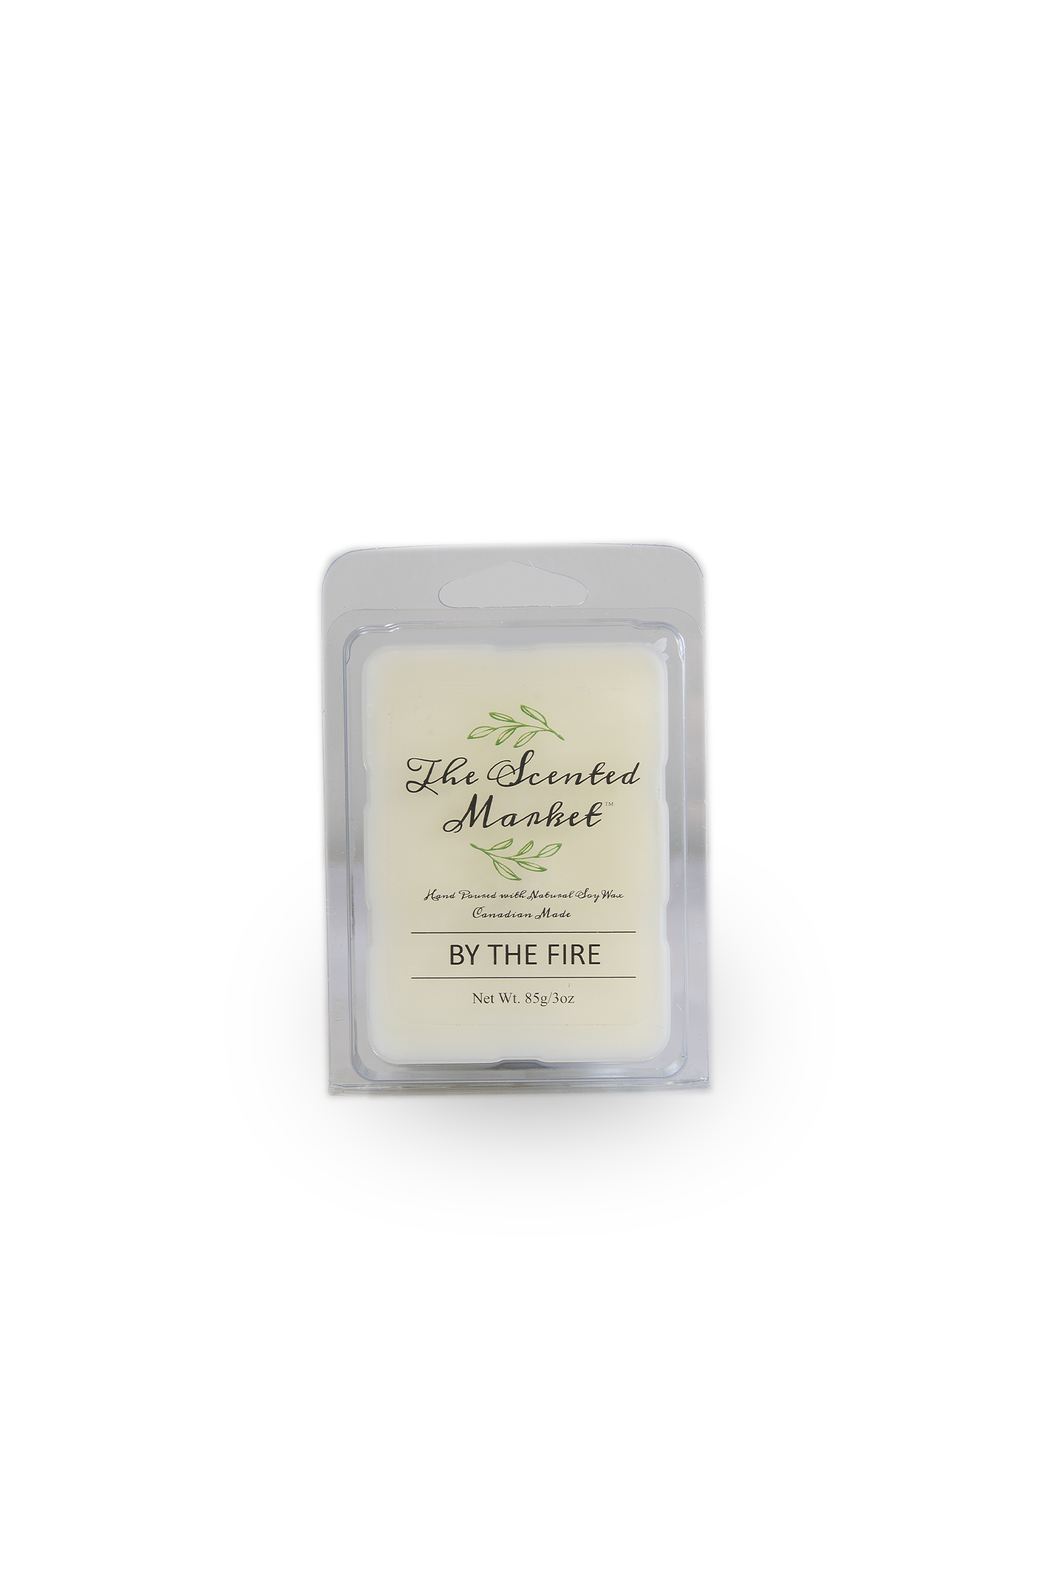 BY THE FIRE SOY WAX MELT